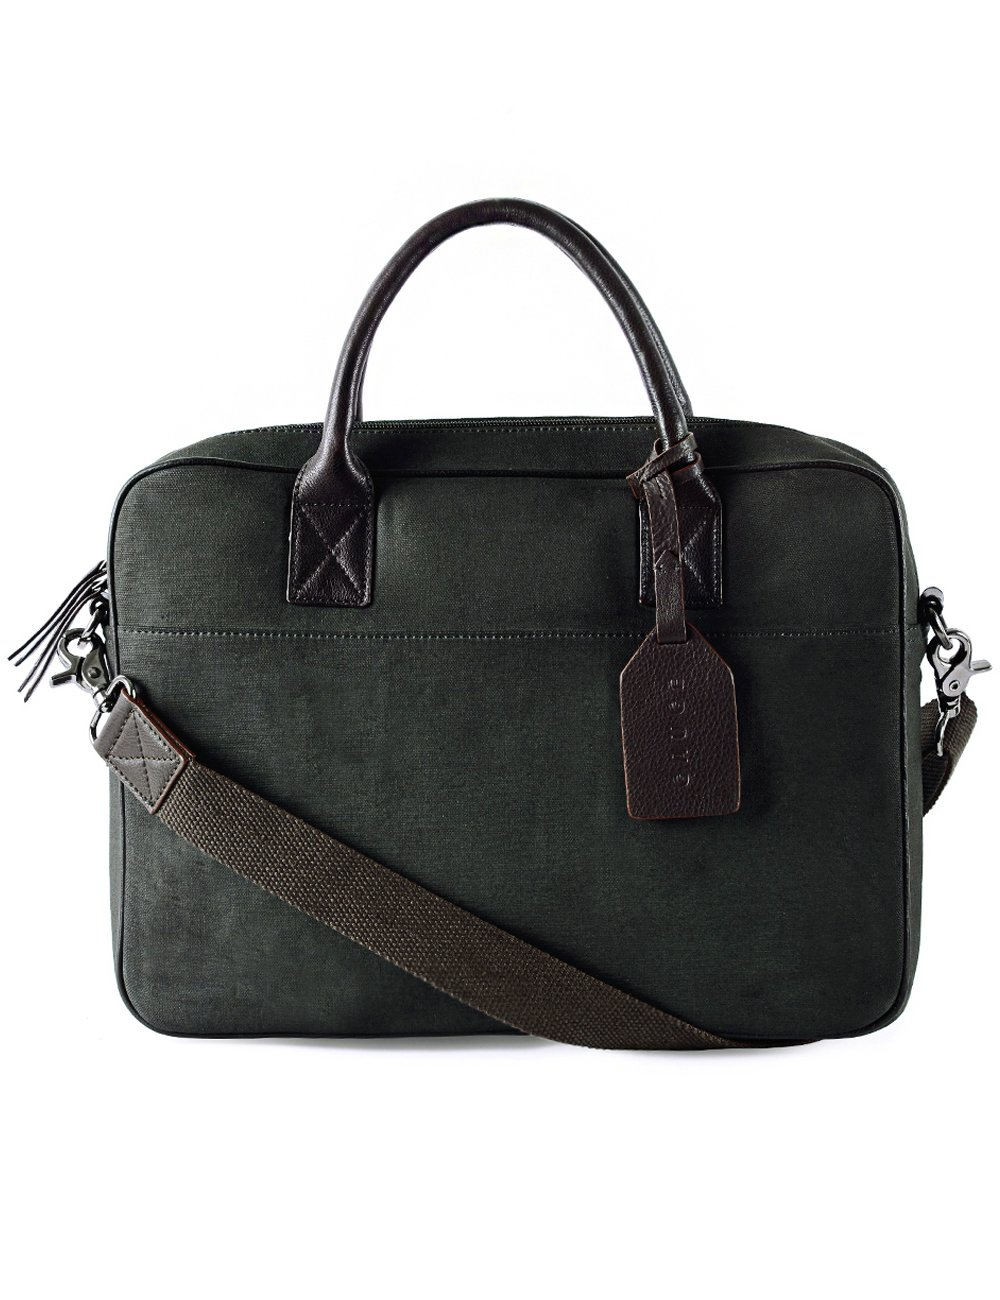 Gauge 14 Inch Leather Trim Laptop Bag Messenger Bag Office Briefcase College Bag Satchel for Men (Olive)